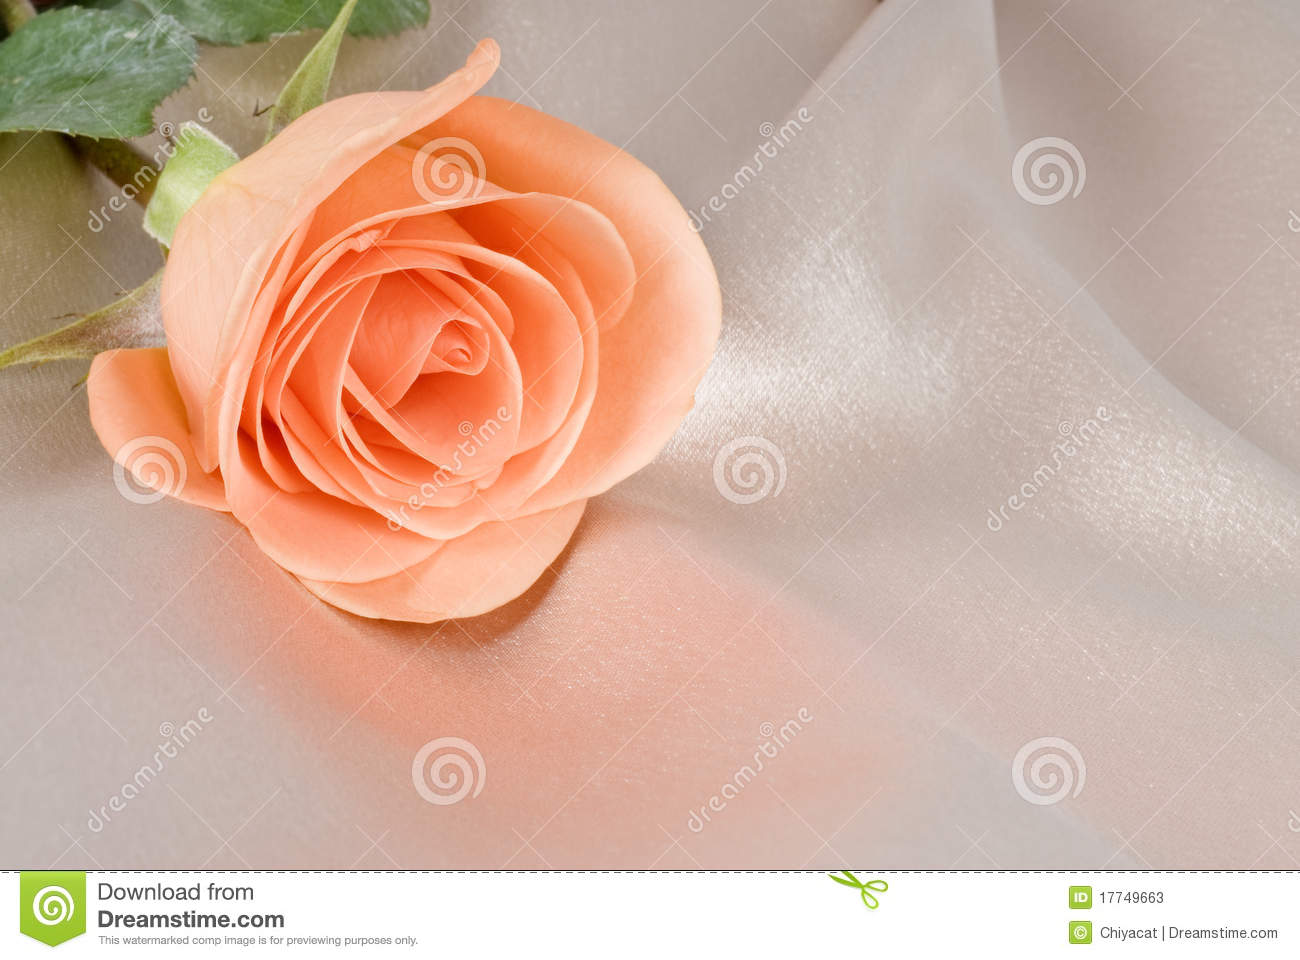 peach colored rose on beige satin background stock image image of